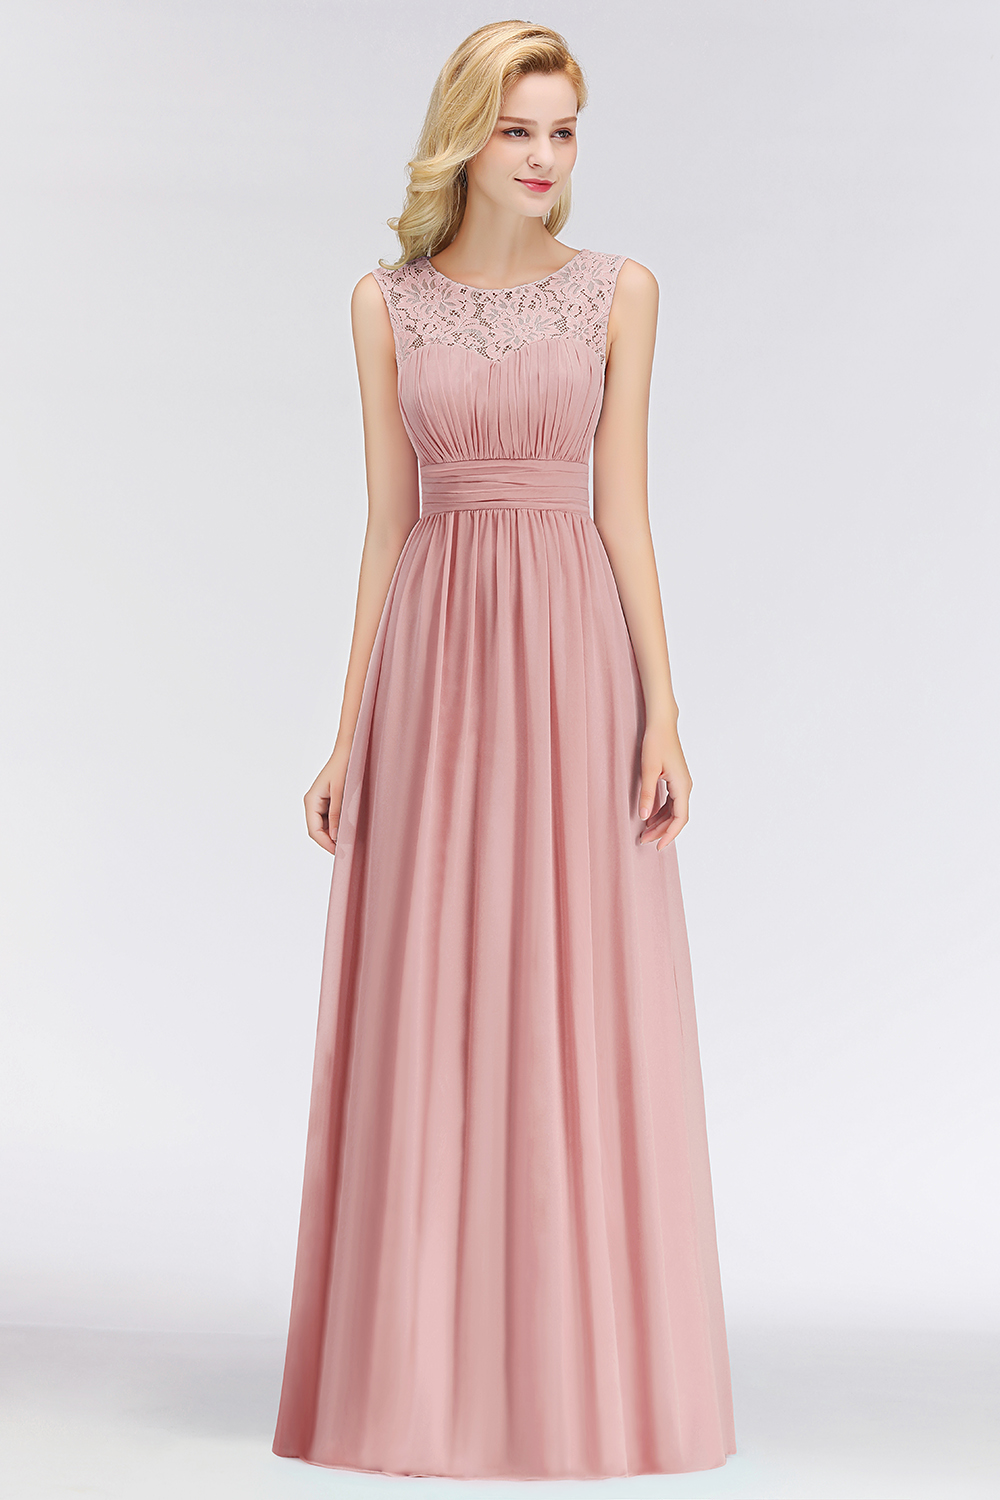 88fe6b8073939 Babyonline Simple Dusty Rose Lace Chiffon Long Evening Dresses 2019  Sleeveless Formal Party Dresses Evening Gown robe de soiree